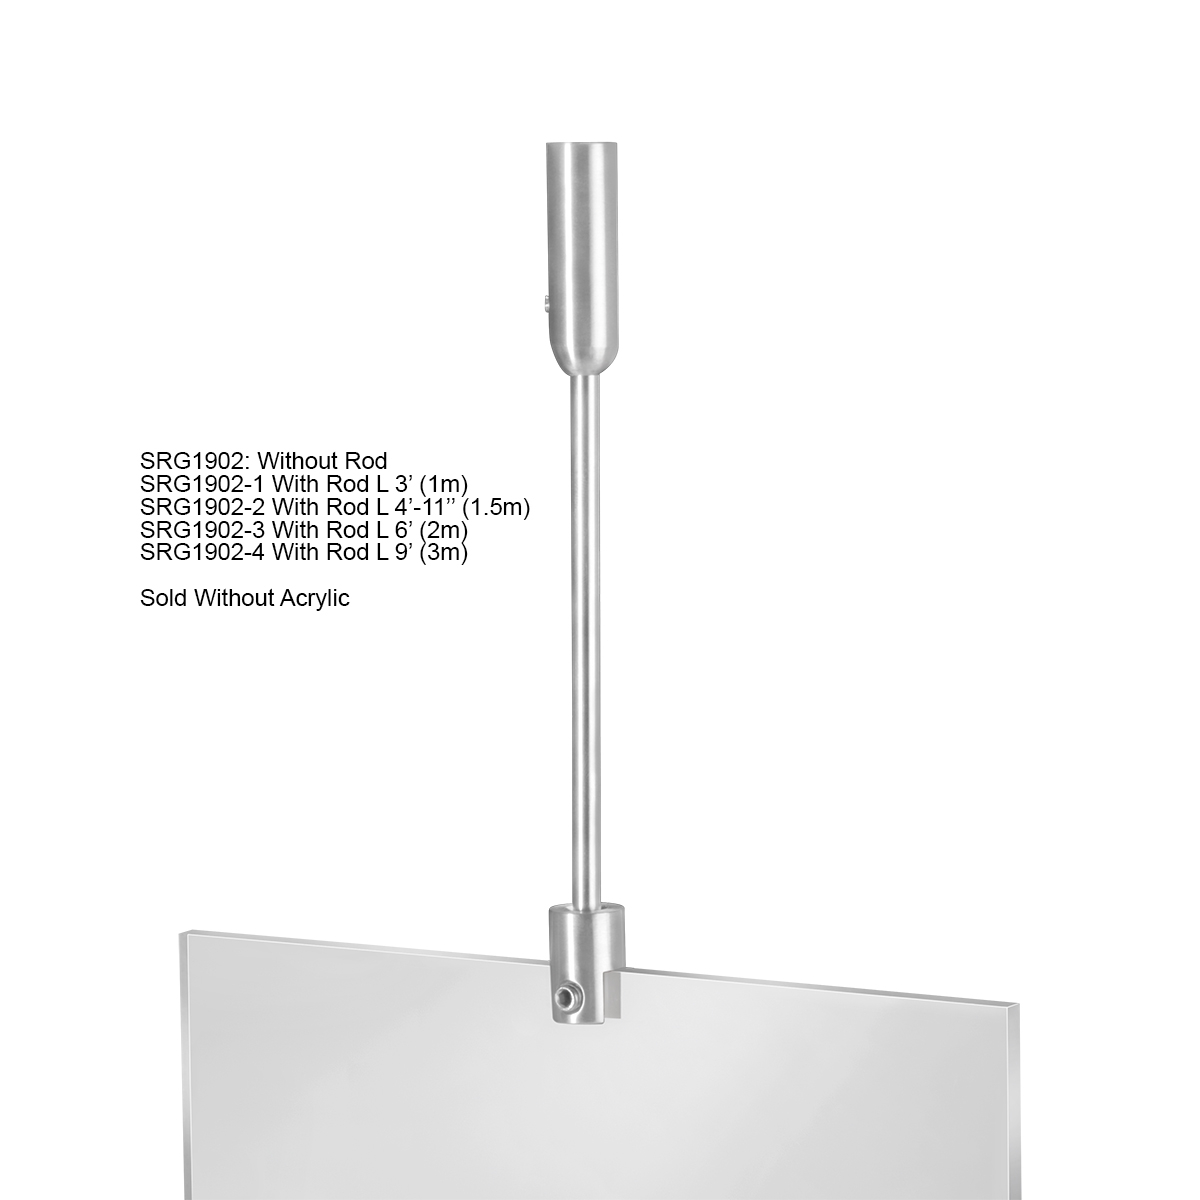 Ceiling Suspended Rod Kit - 3' - Stainless Steel